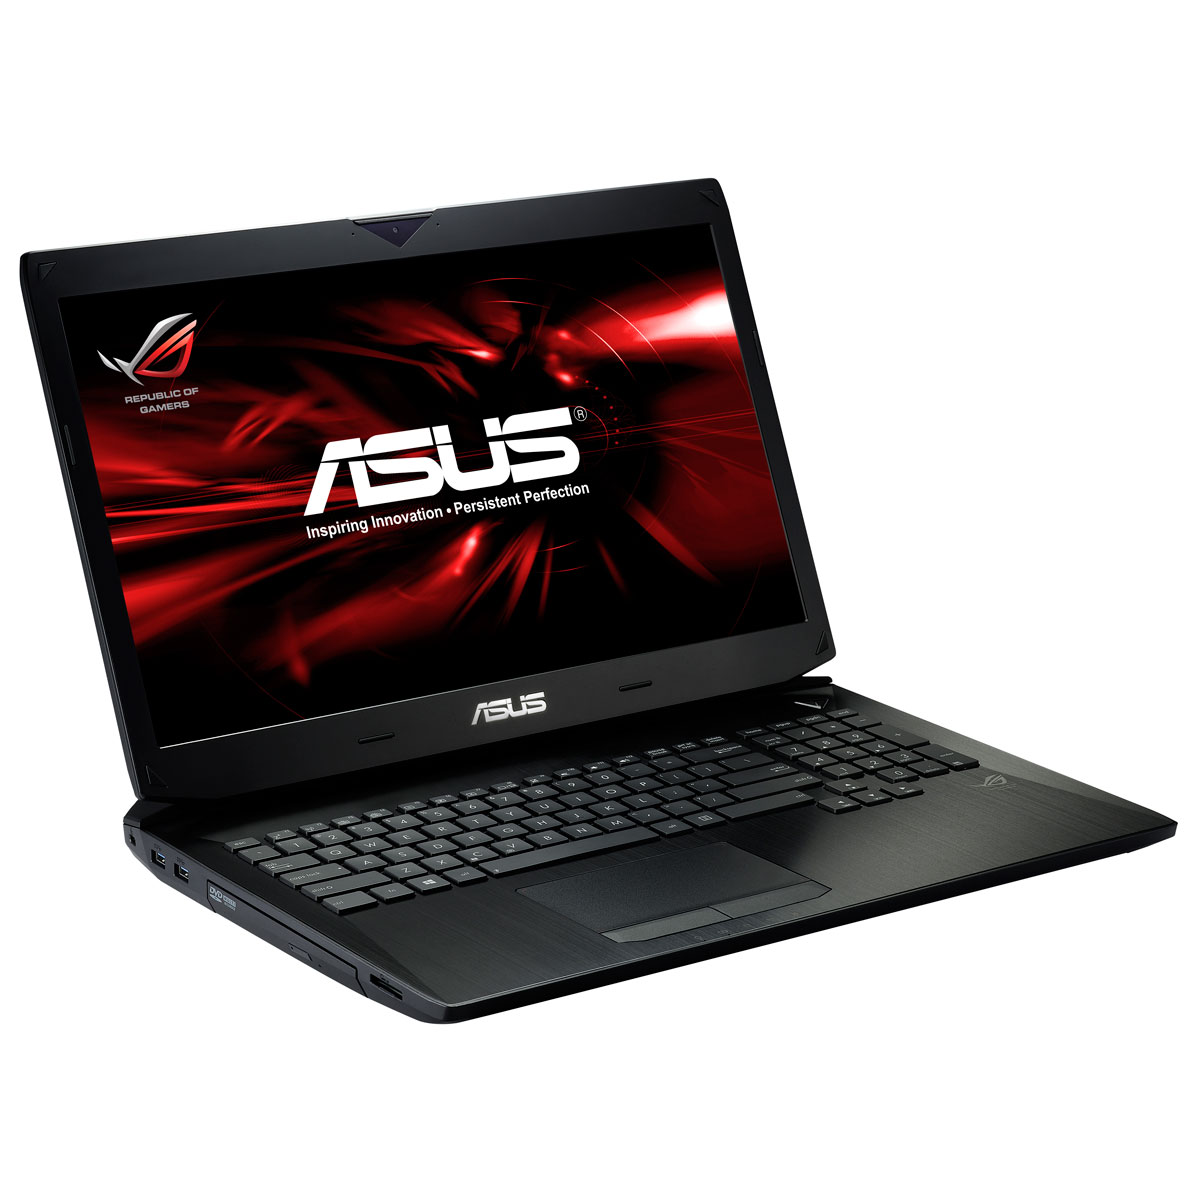 "PC portable ASUS G750JH-T4181H Intel Core i7-4700HQ 16 Go SSD 256 Go + HDD 1 To 17.3"" LED NVIDIA GeForce GTX 780M Lecteur Blu-ray/Graveur DVD Wi-Fi N/Bluetooth Webcam Windows 8 64 bits (garantie constructeur 1 an)"